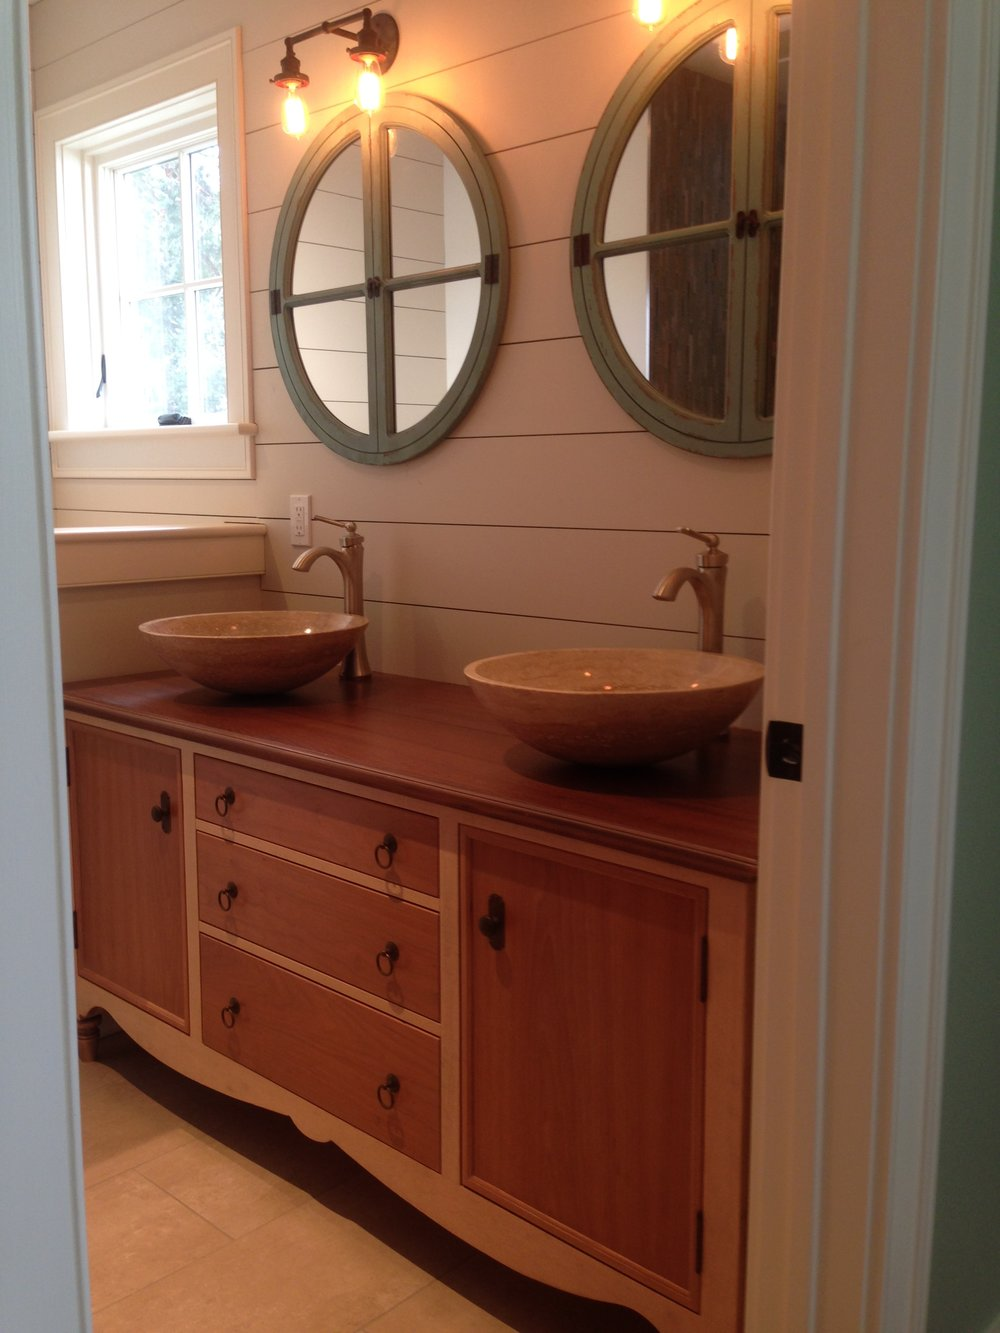 Master Bath Vanity of Maple and Cherry, with Mahogany Top, and Travertine Vessel Sinks 1.jpg